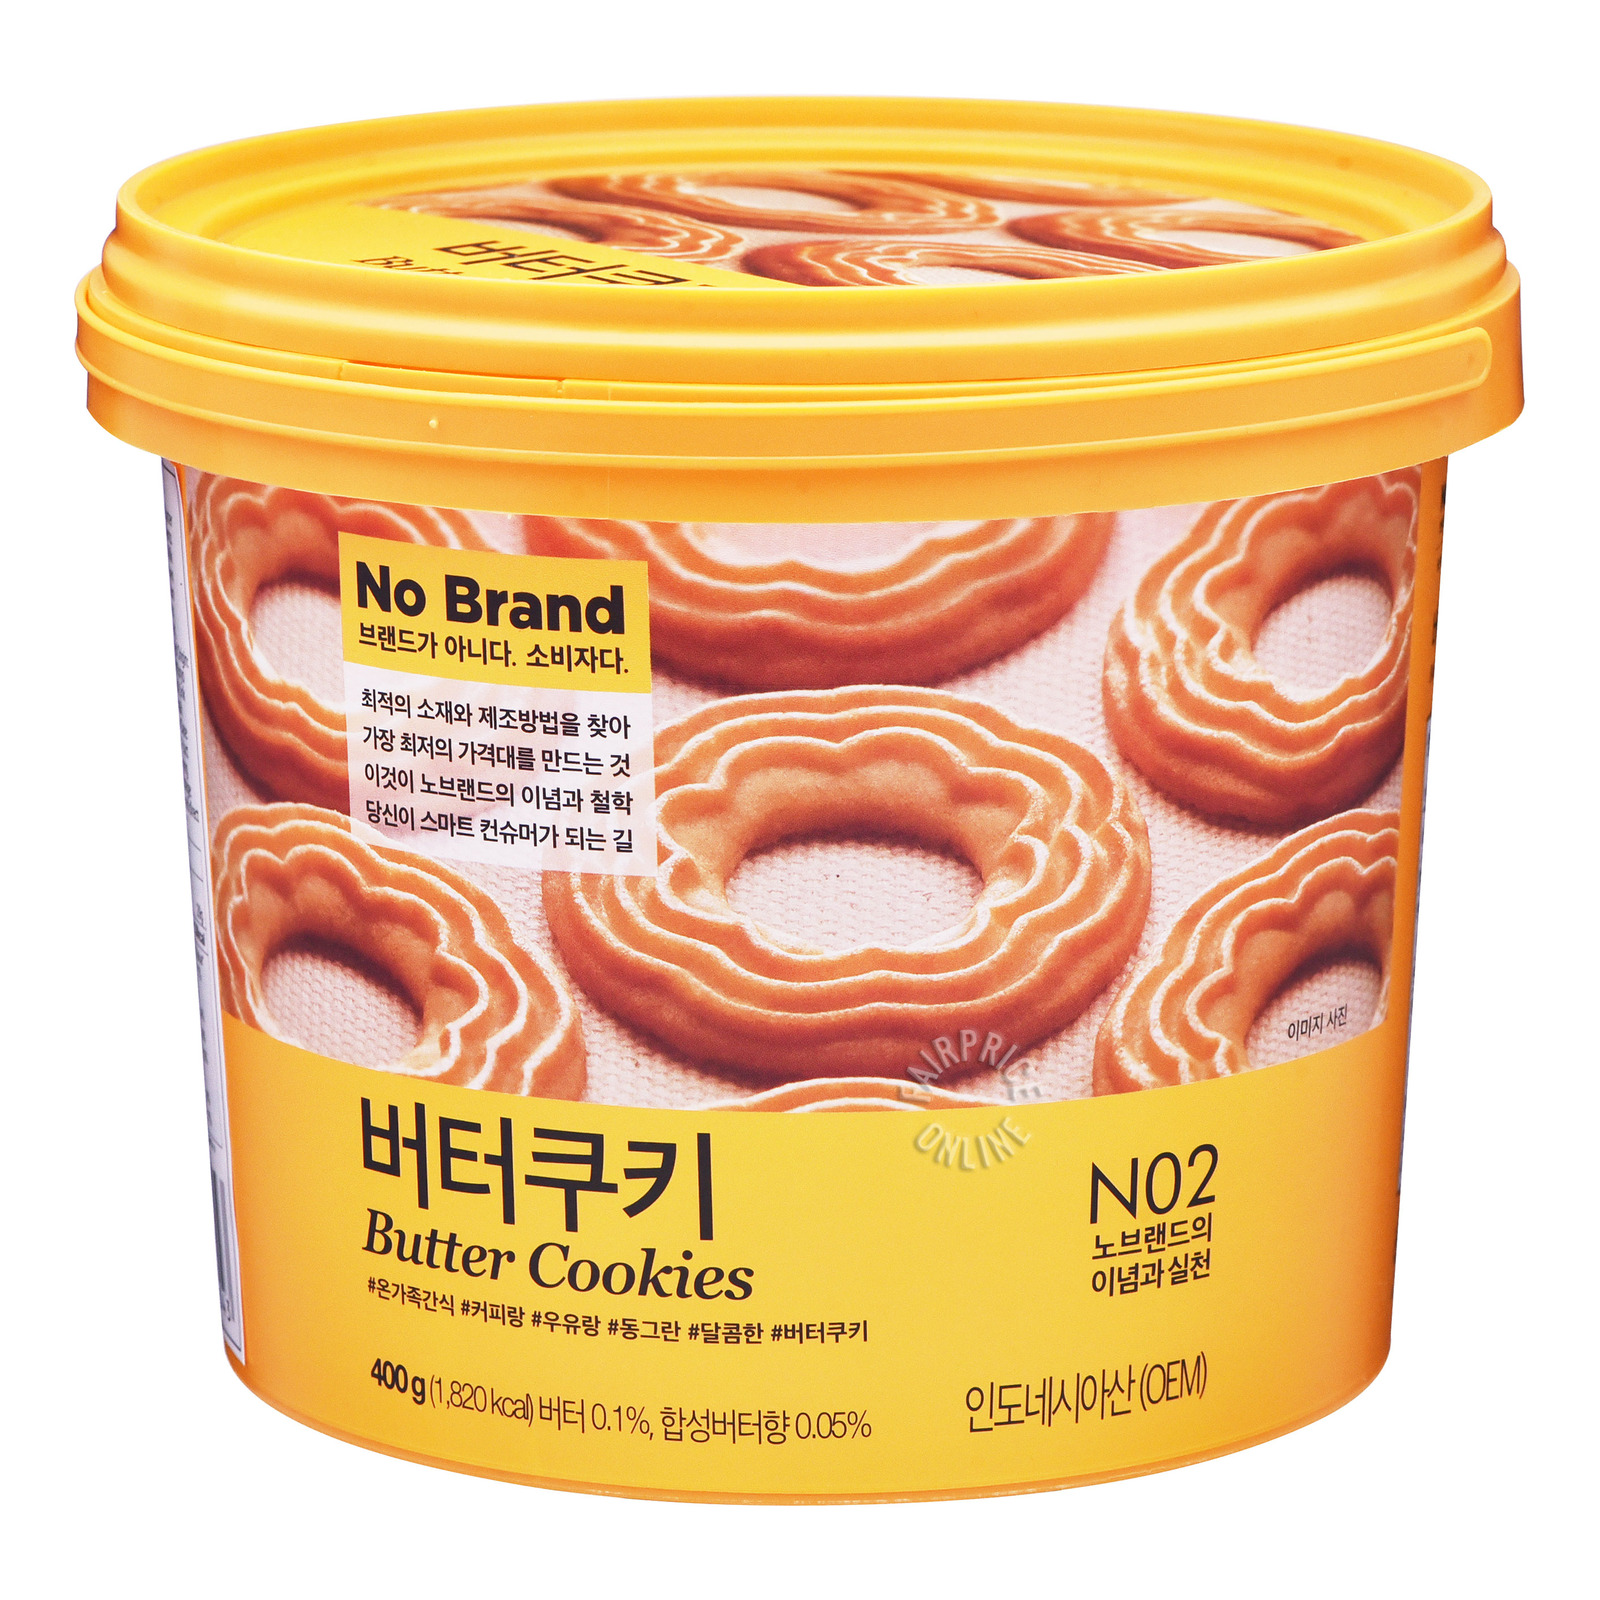 No Brand Cookies - Butter